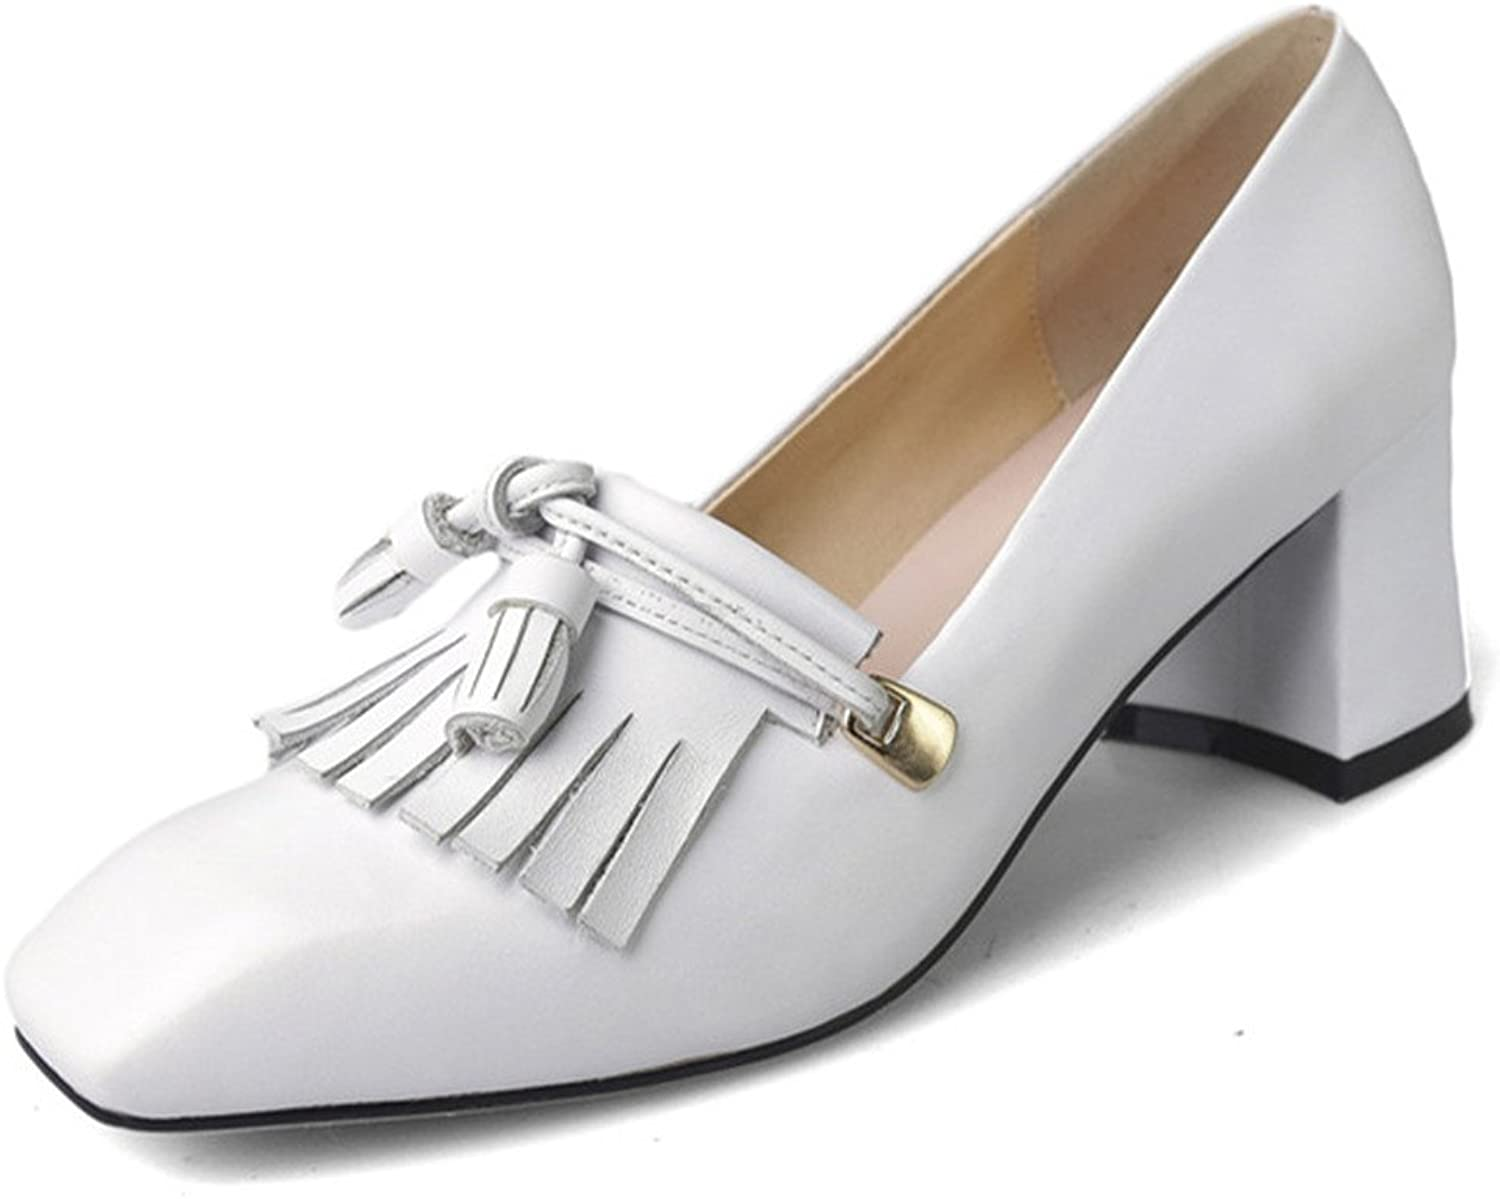 Nine Seven Genuine Leather Women's Square Toe Chunky Heel Tassels Handmade Style Pump shoes Outfit